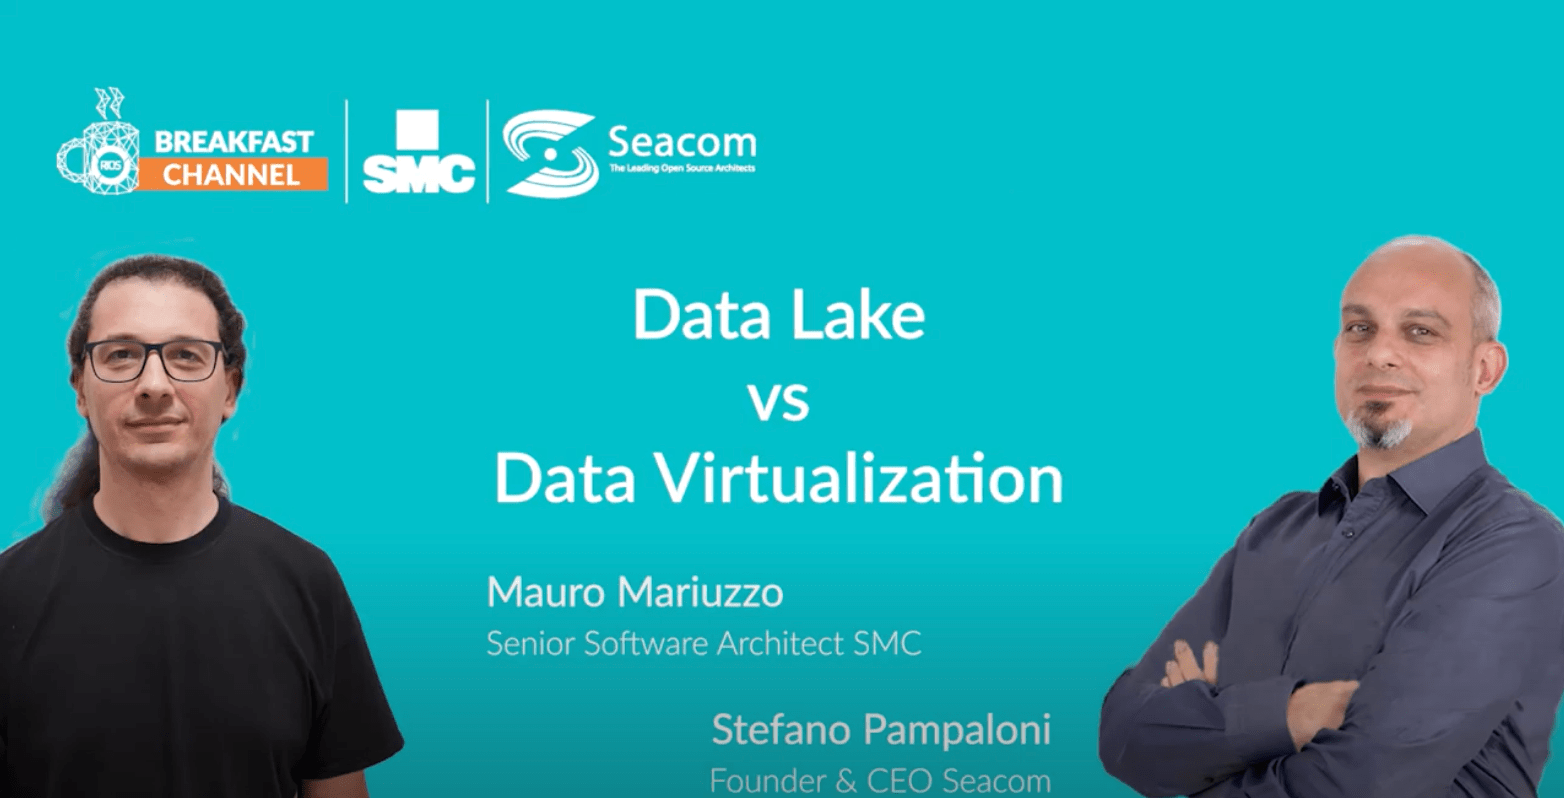 Breakfast Channel – Data Lake vs Data Virtualization?